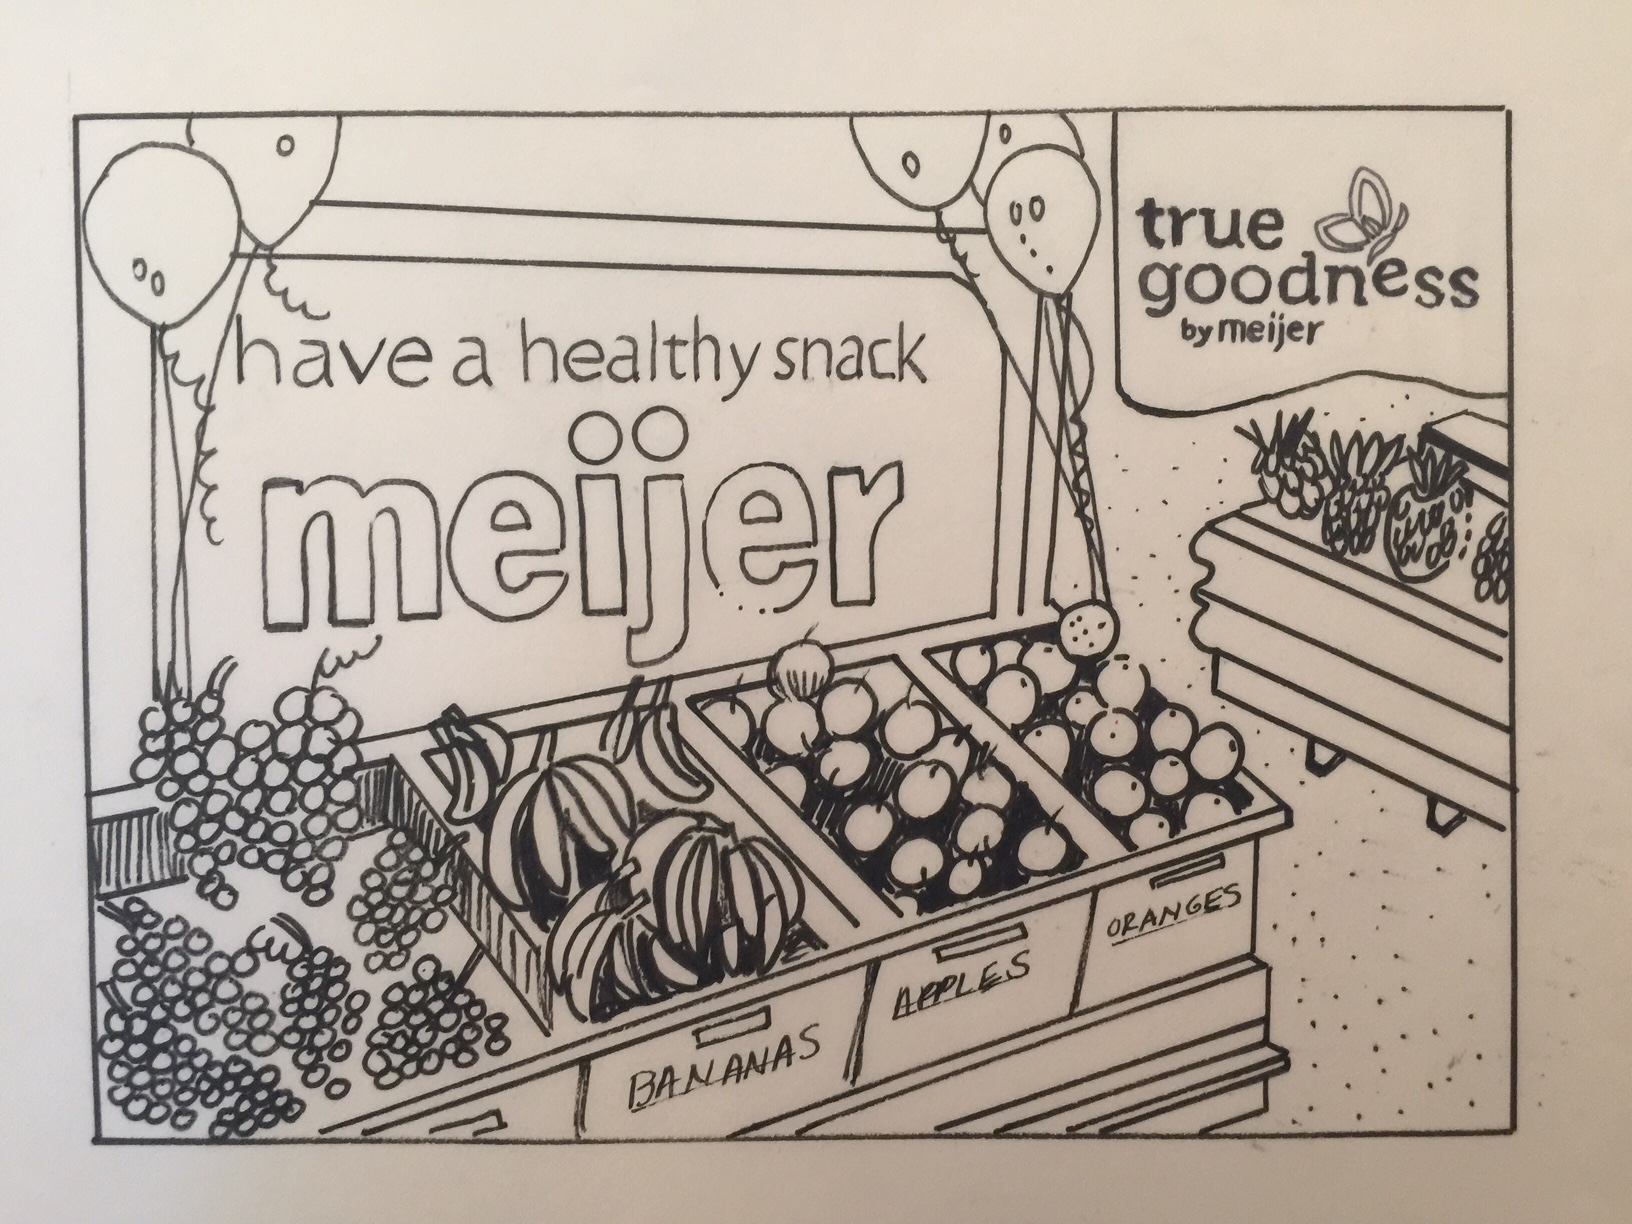 TRUE GOODNESS BY MEIJER